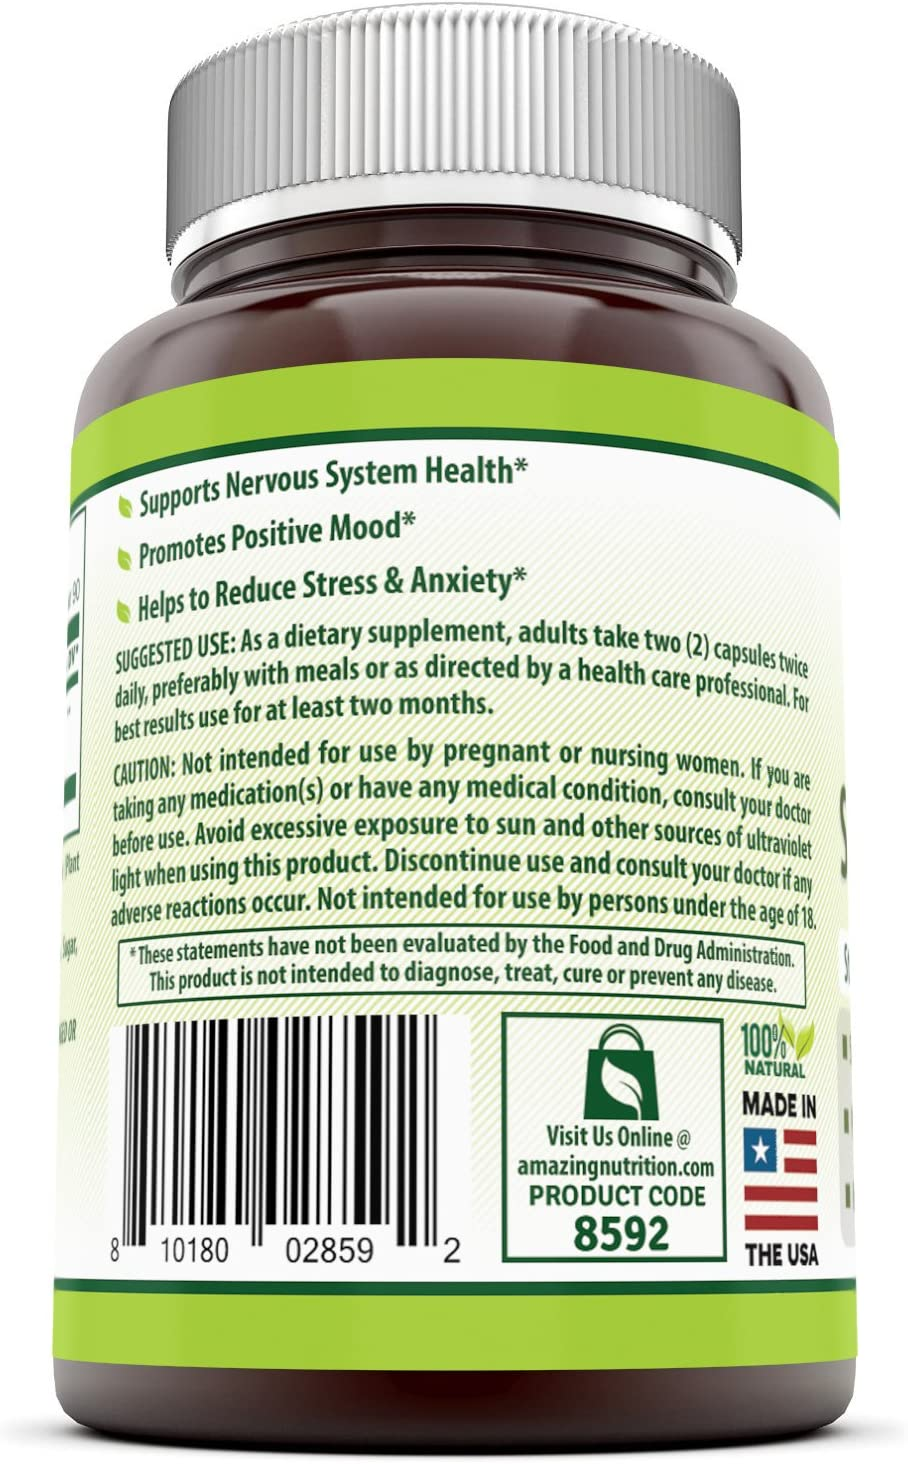 Herbal Secrets St. John's Wort 700 Mg 180 Capsules (Non-GMO) - Supports Feelings of Calm and Relaxation* Helps Maintain a Positive Mood*: Health & Personal Care